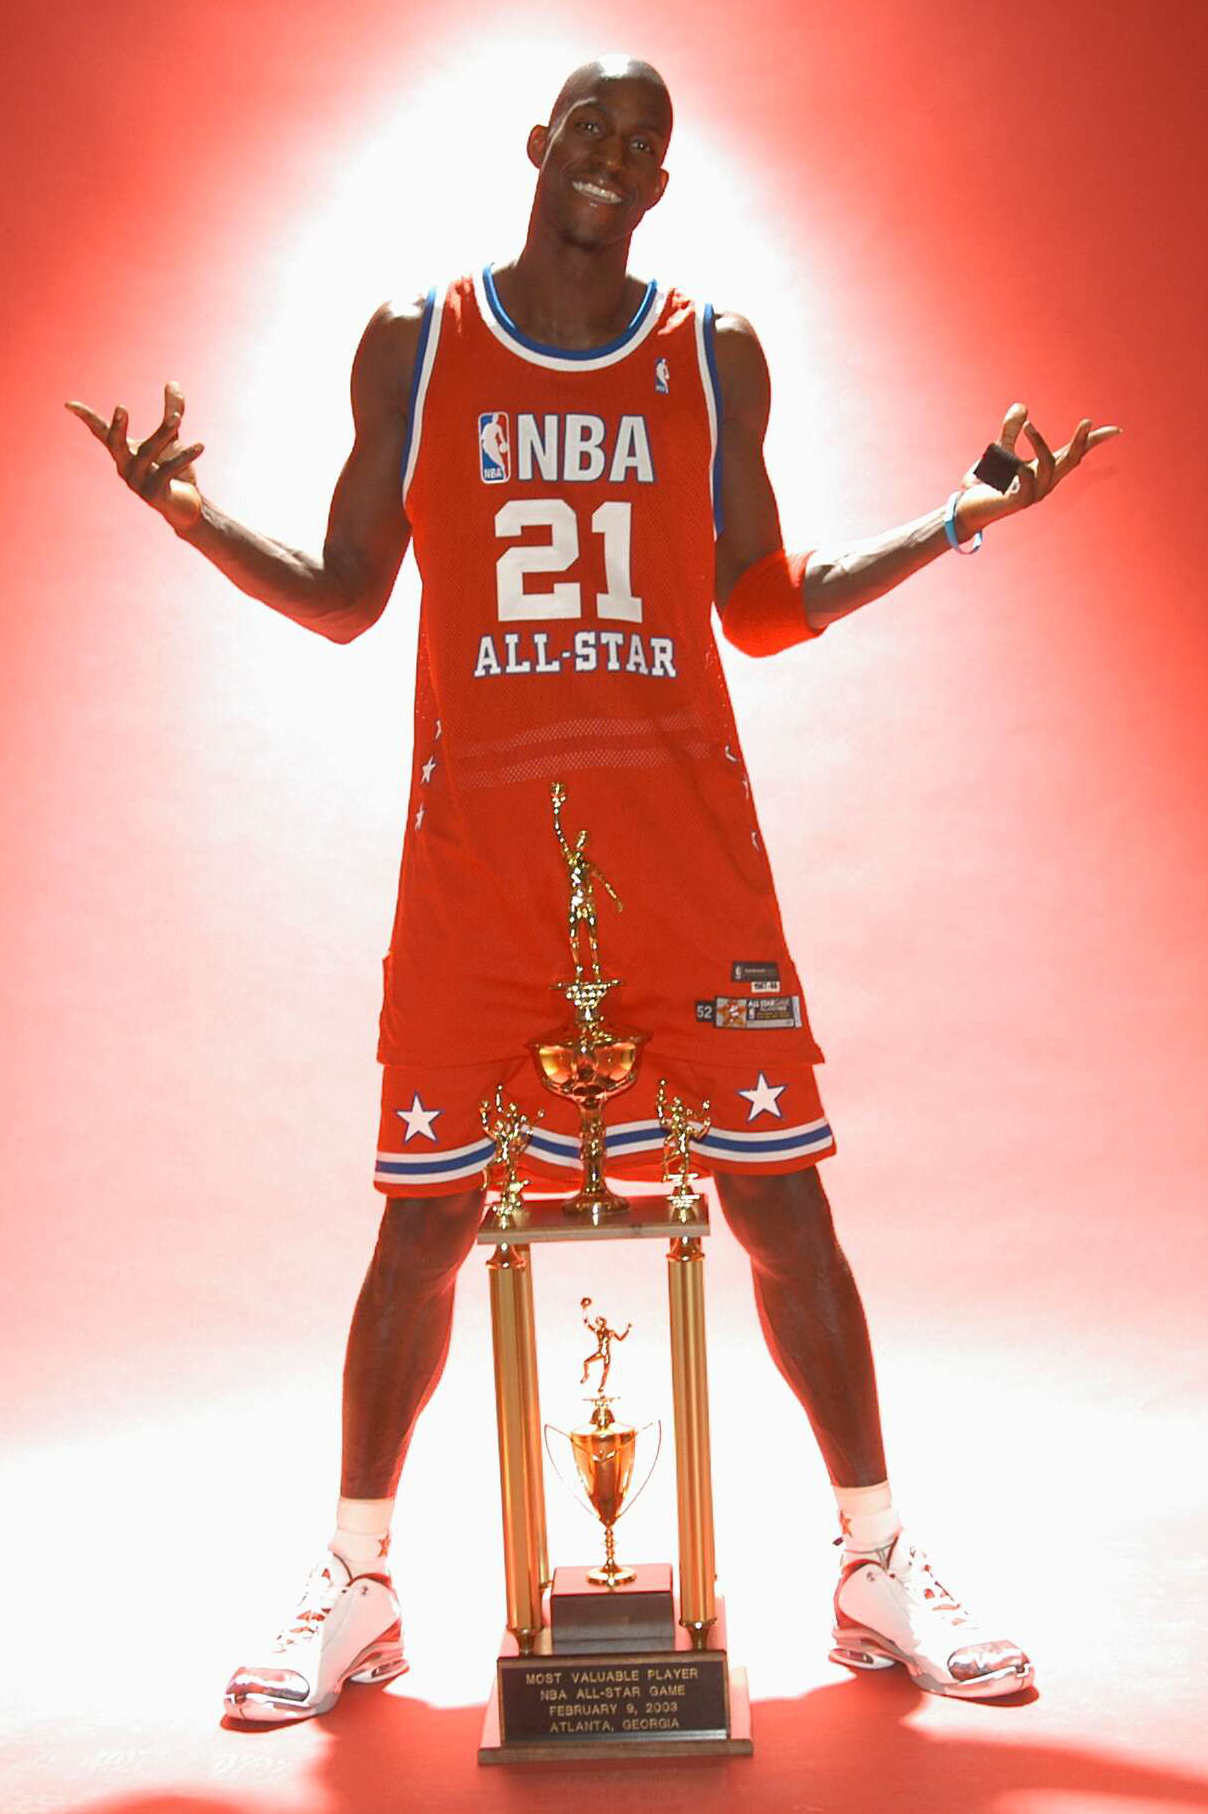 Kevin Garnett of the Western Conference is named MVP of the 52nd NBA All Star Game on February 9, 2003 at the Philips Arena in Atlanta, Georgia.